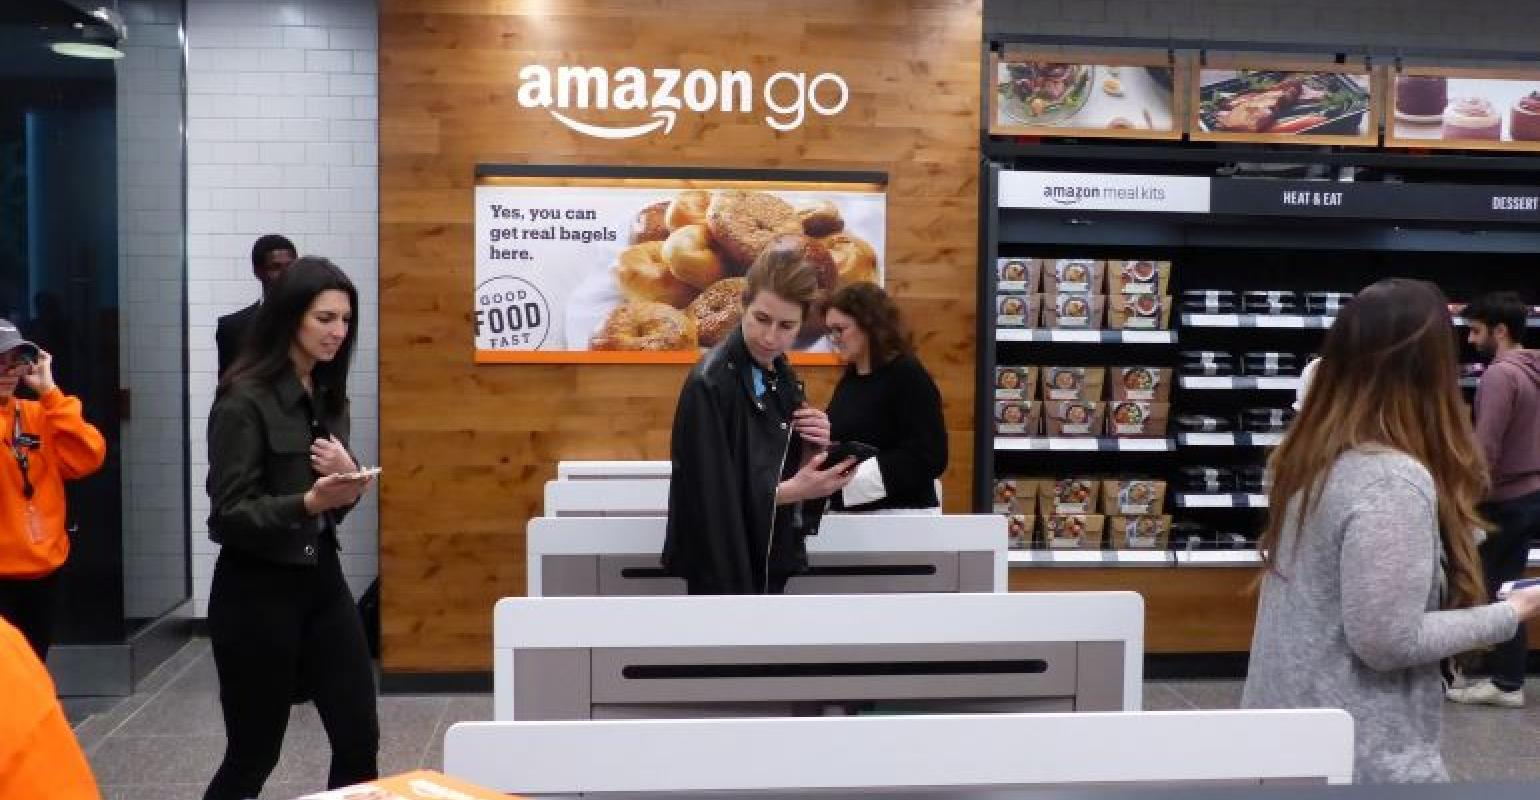 Three More Amazon Go Stores On The Way Supermarket News